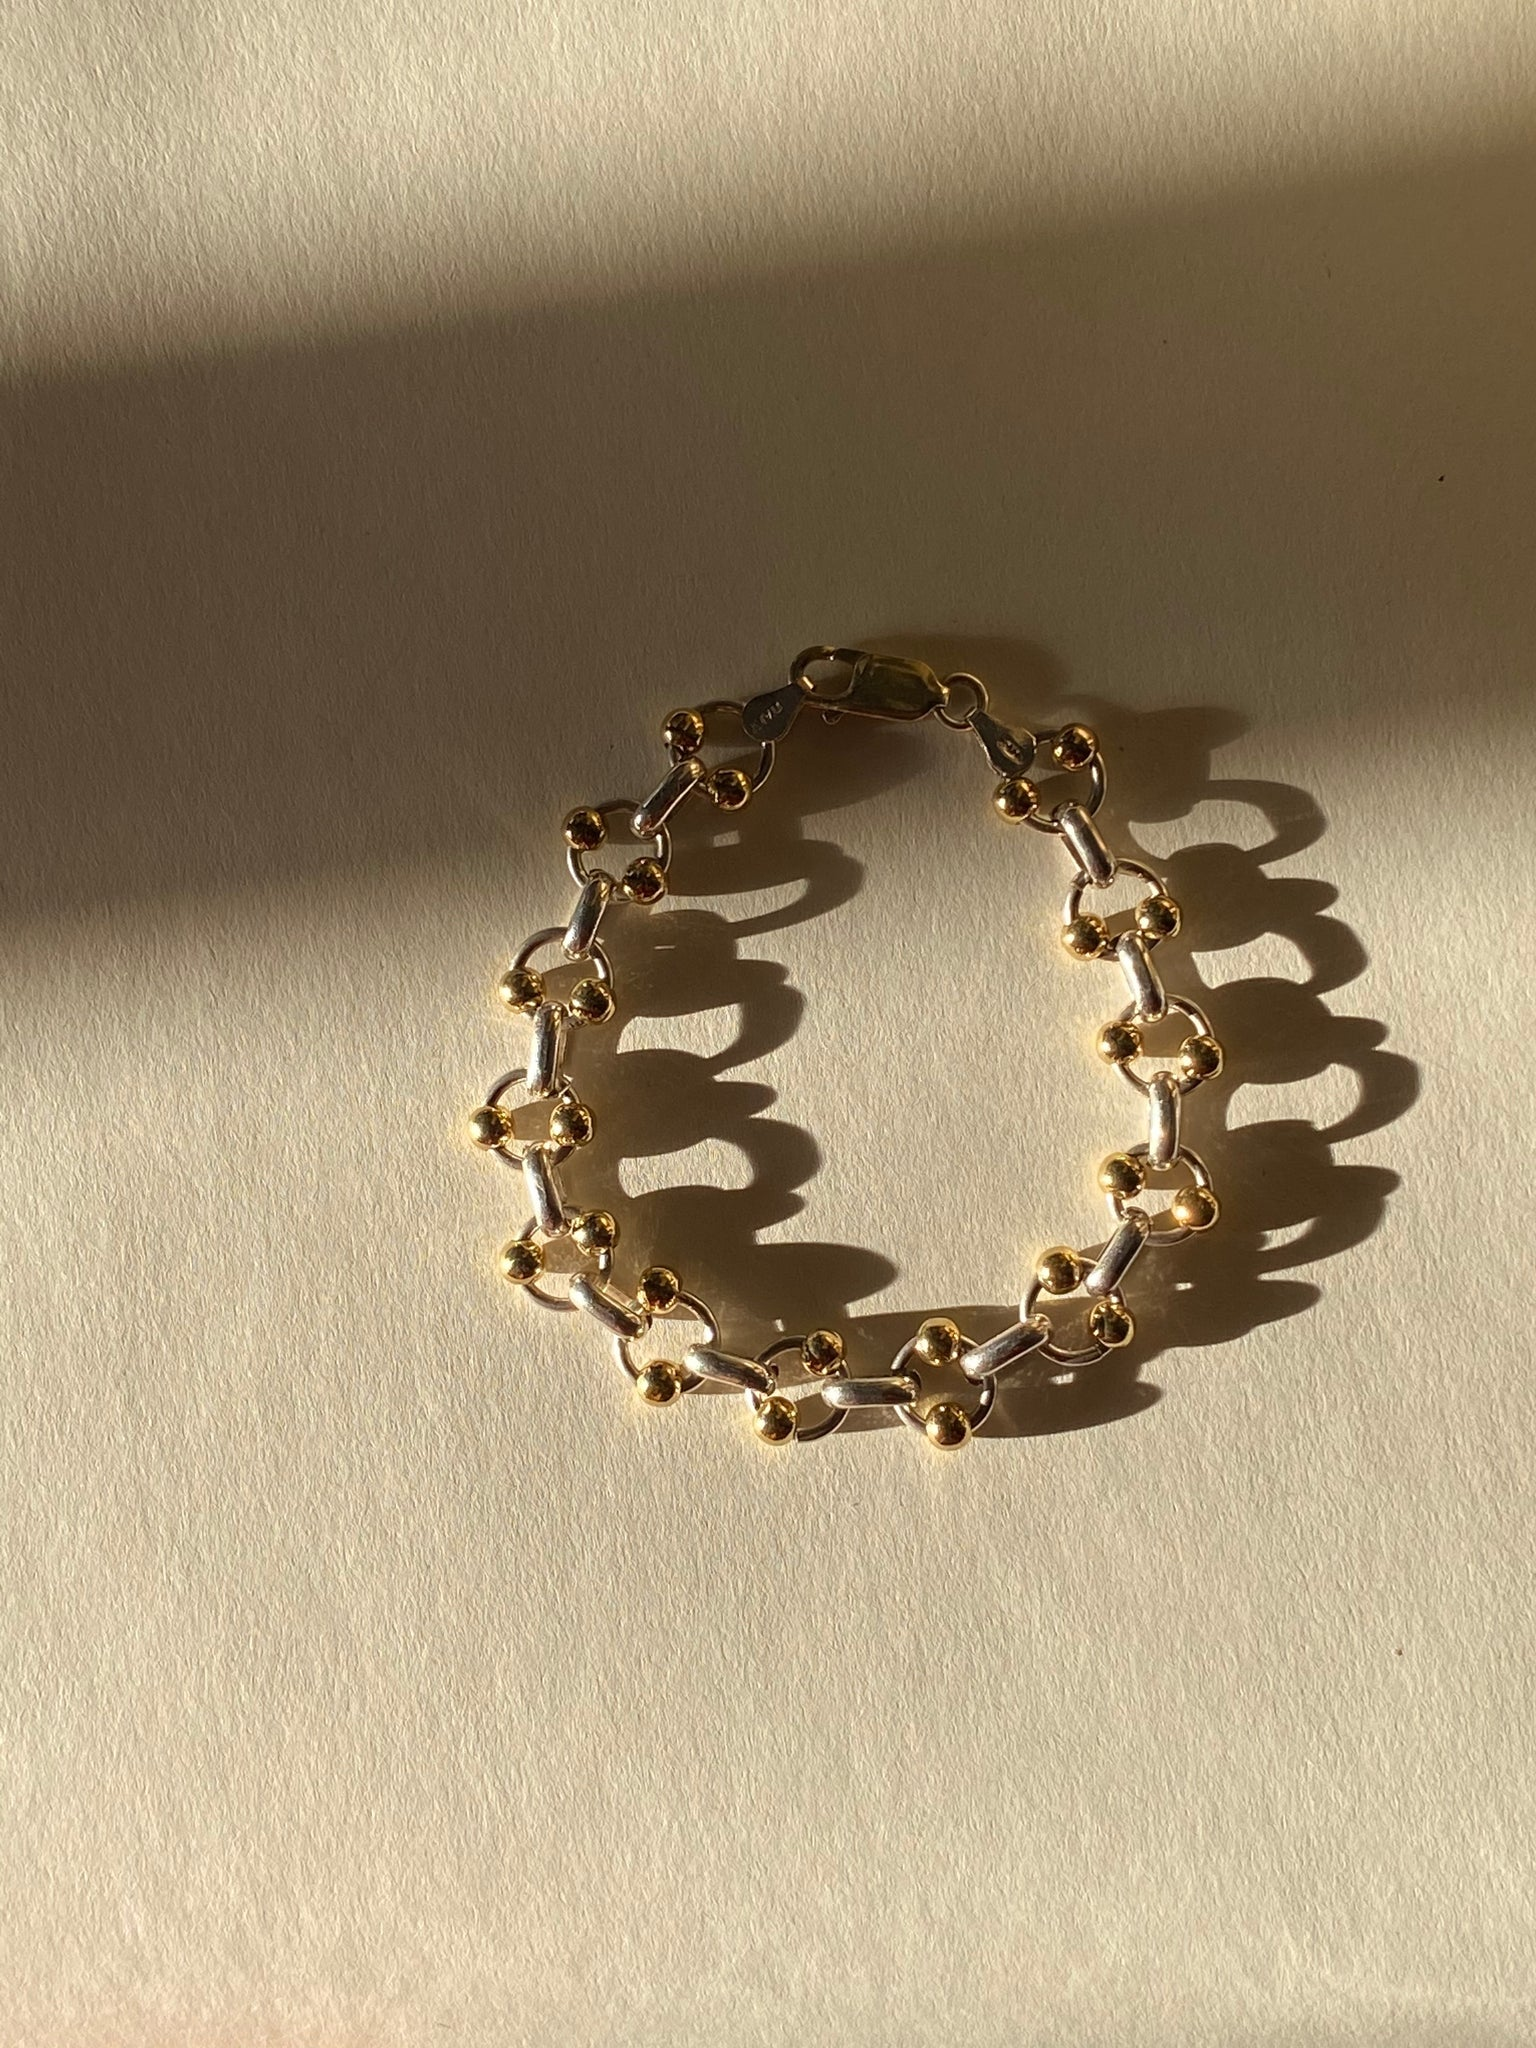 Ball and Chain Bracelet